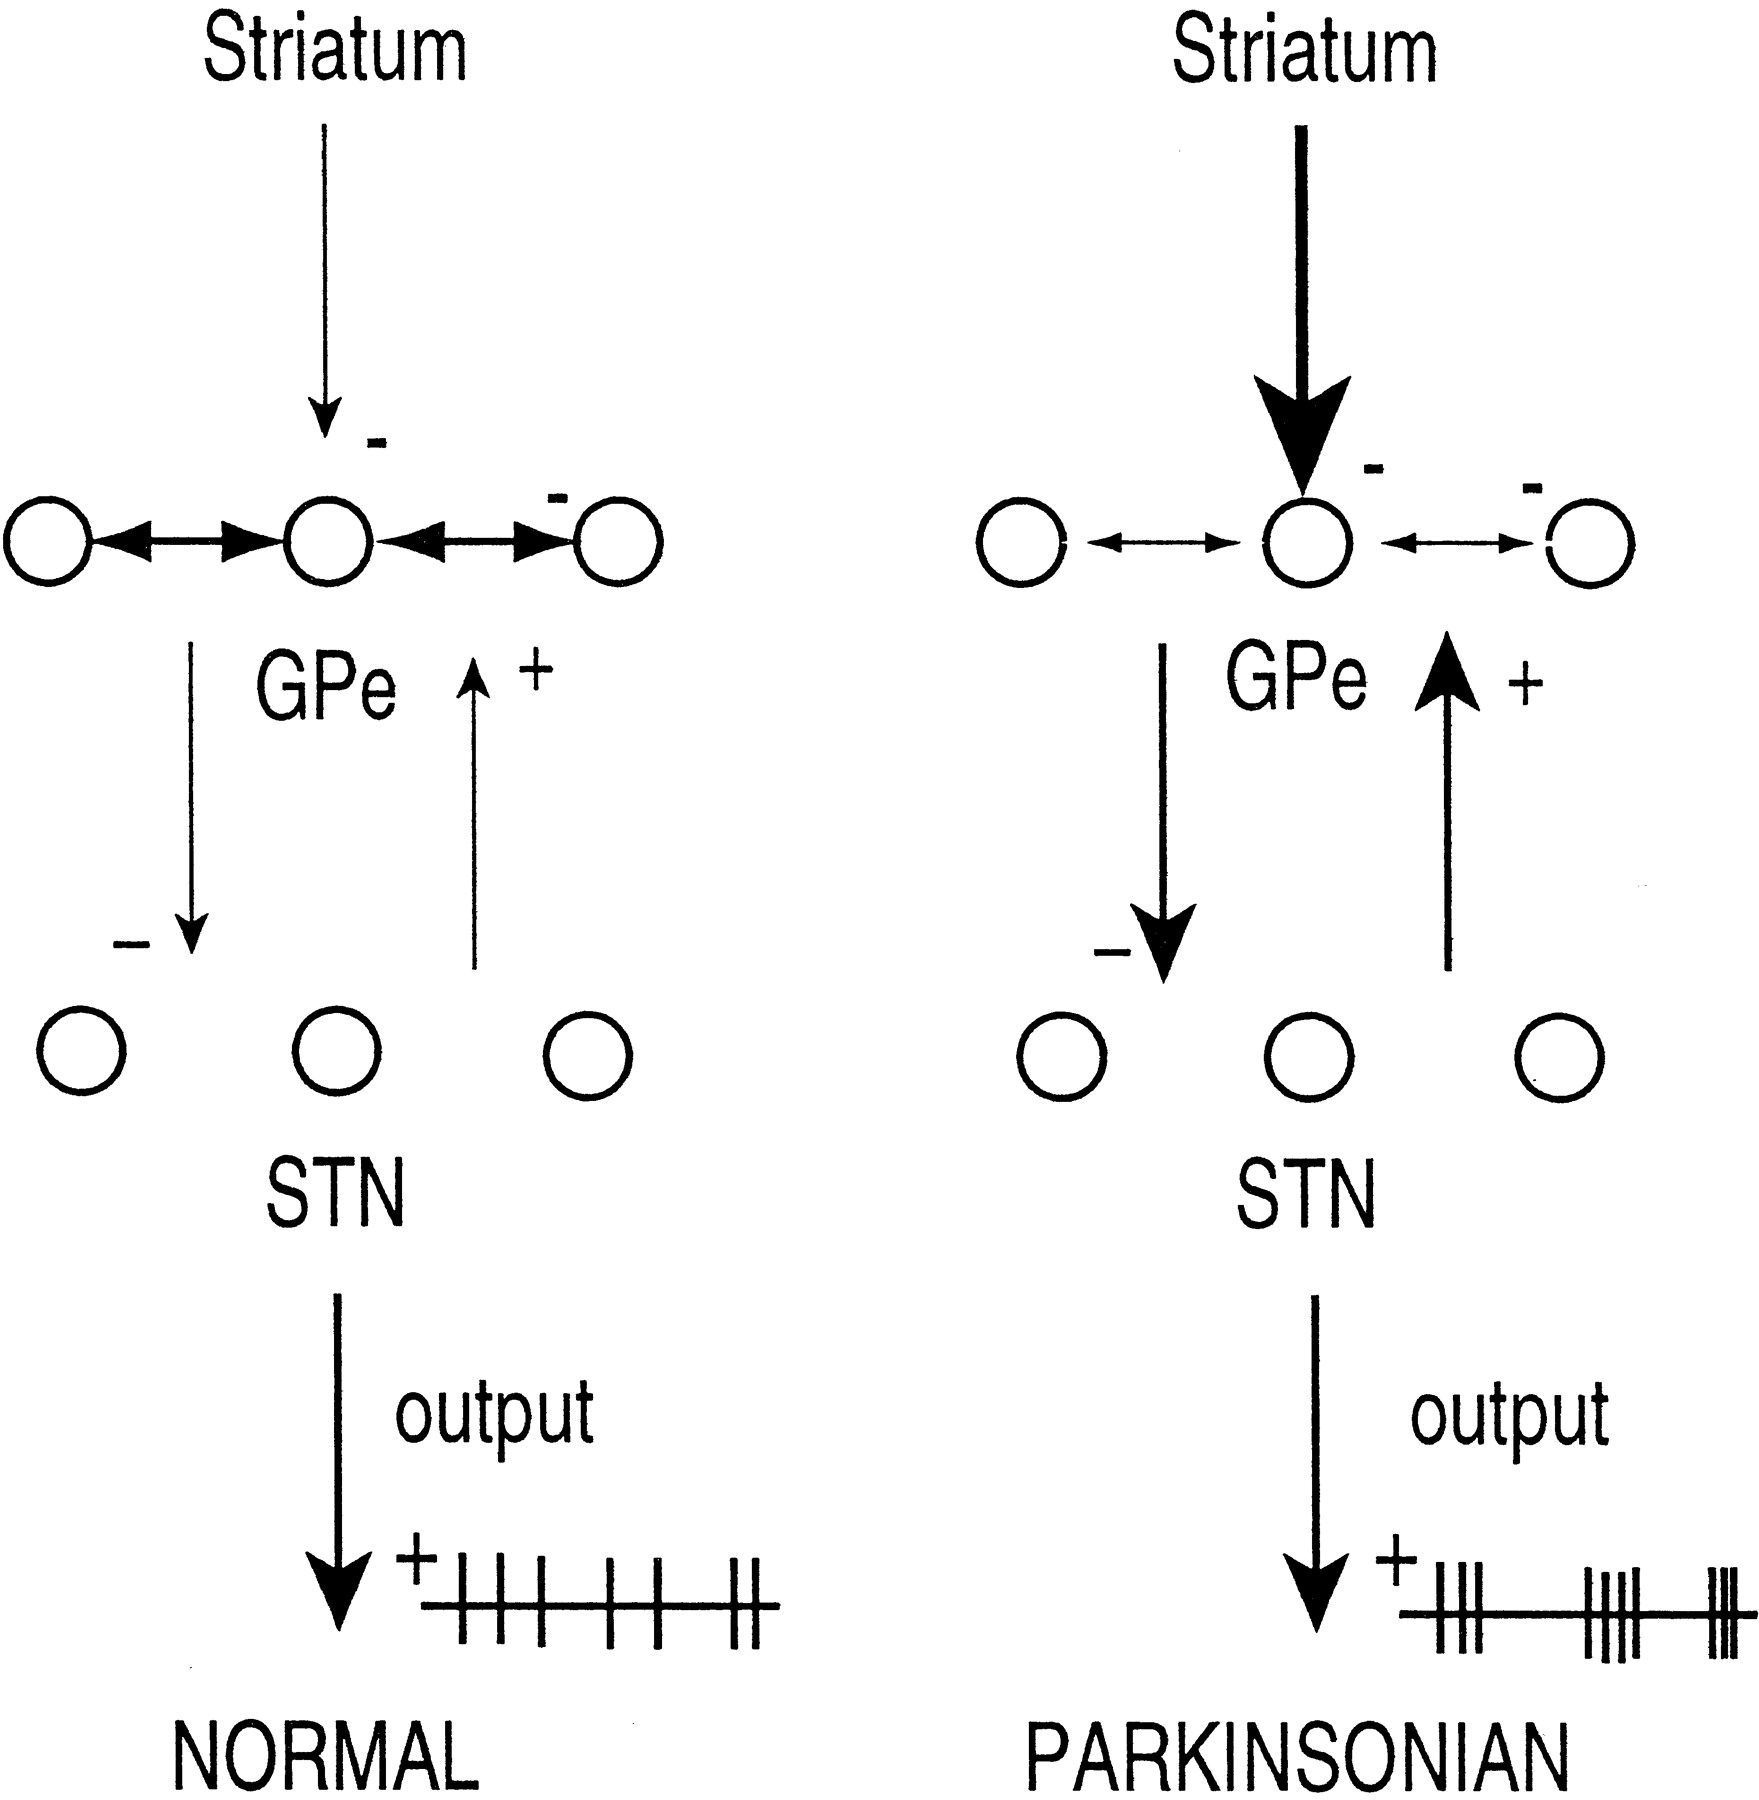 Activity Patterns In A Model For The Subthalamopallidal